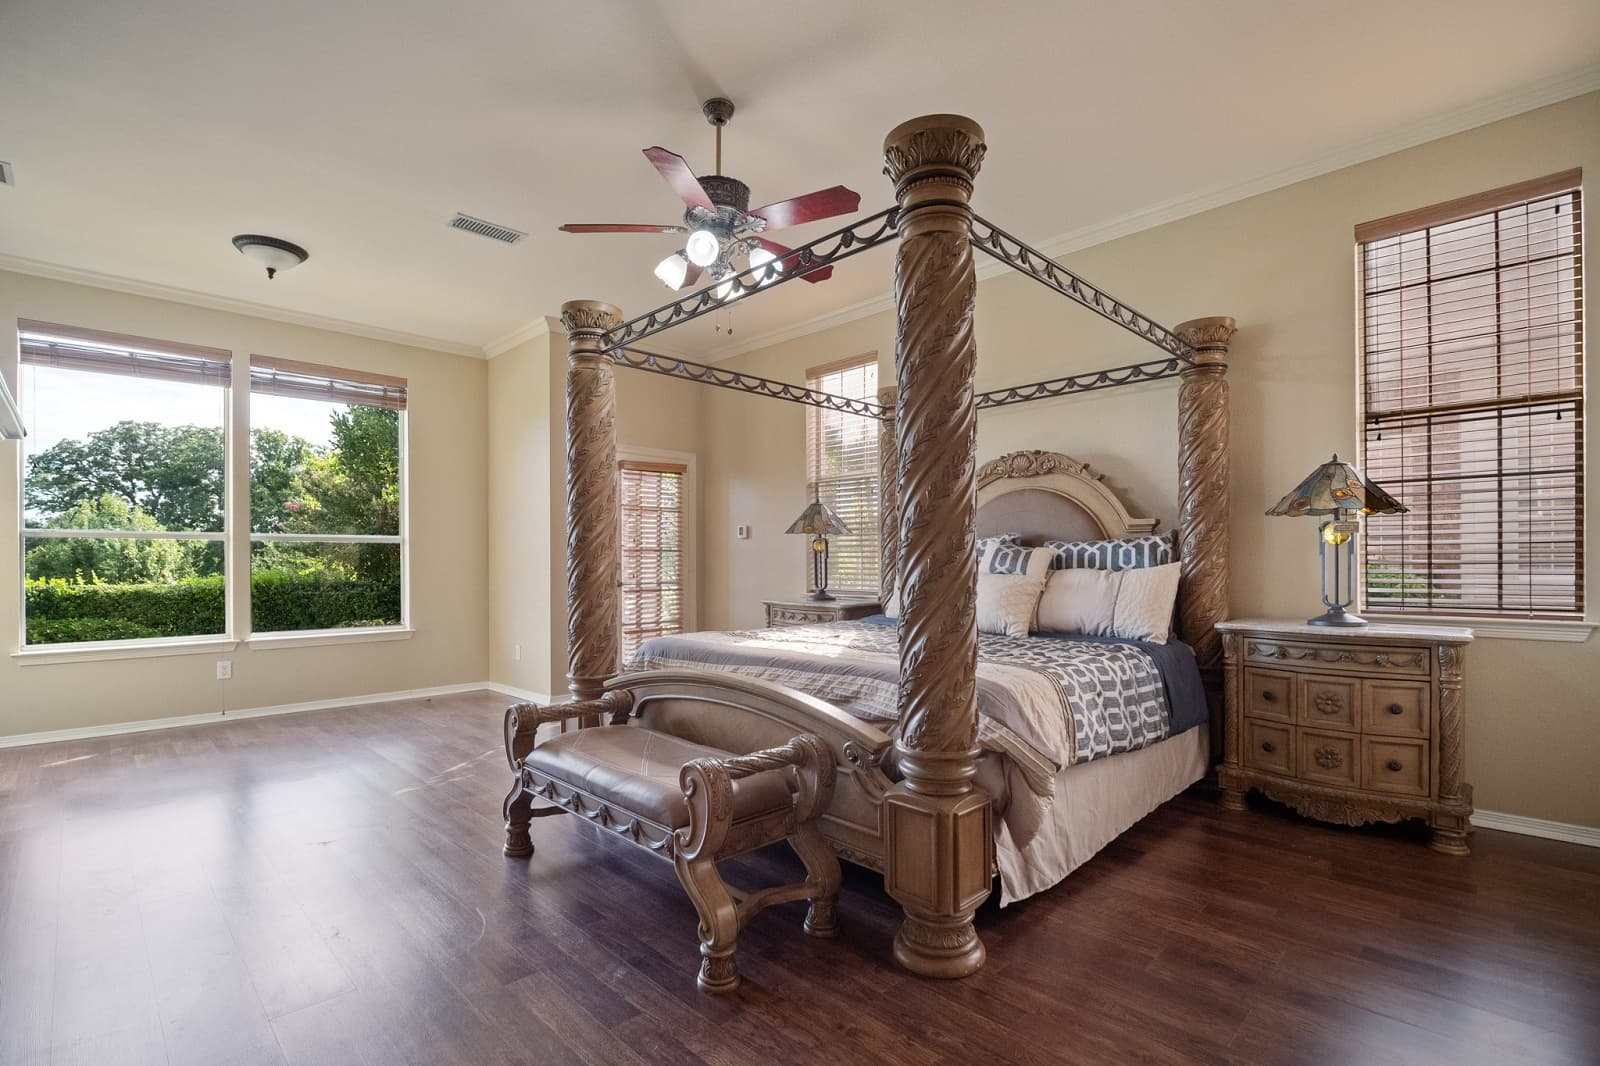 Real Estate Photography in Plano - TX - Bedroom View